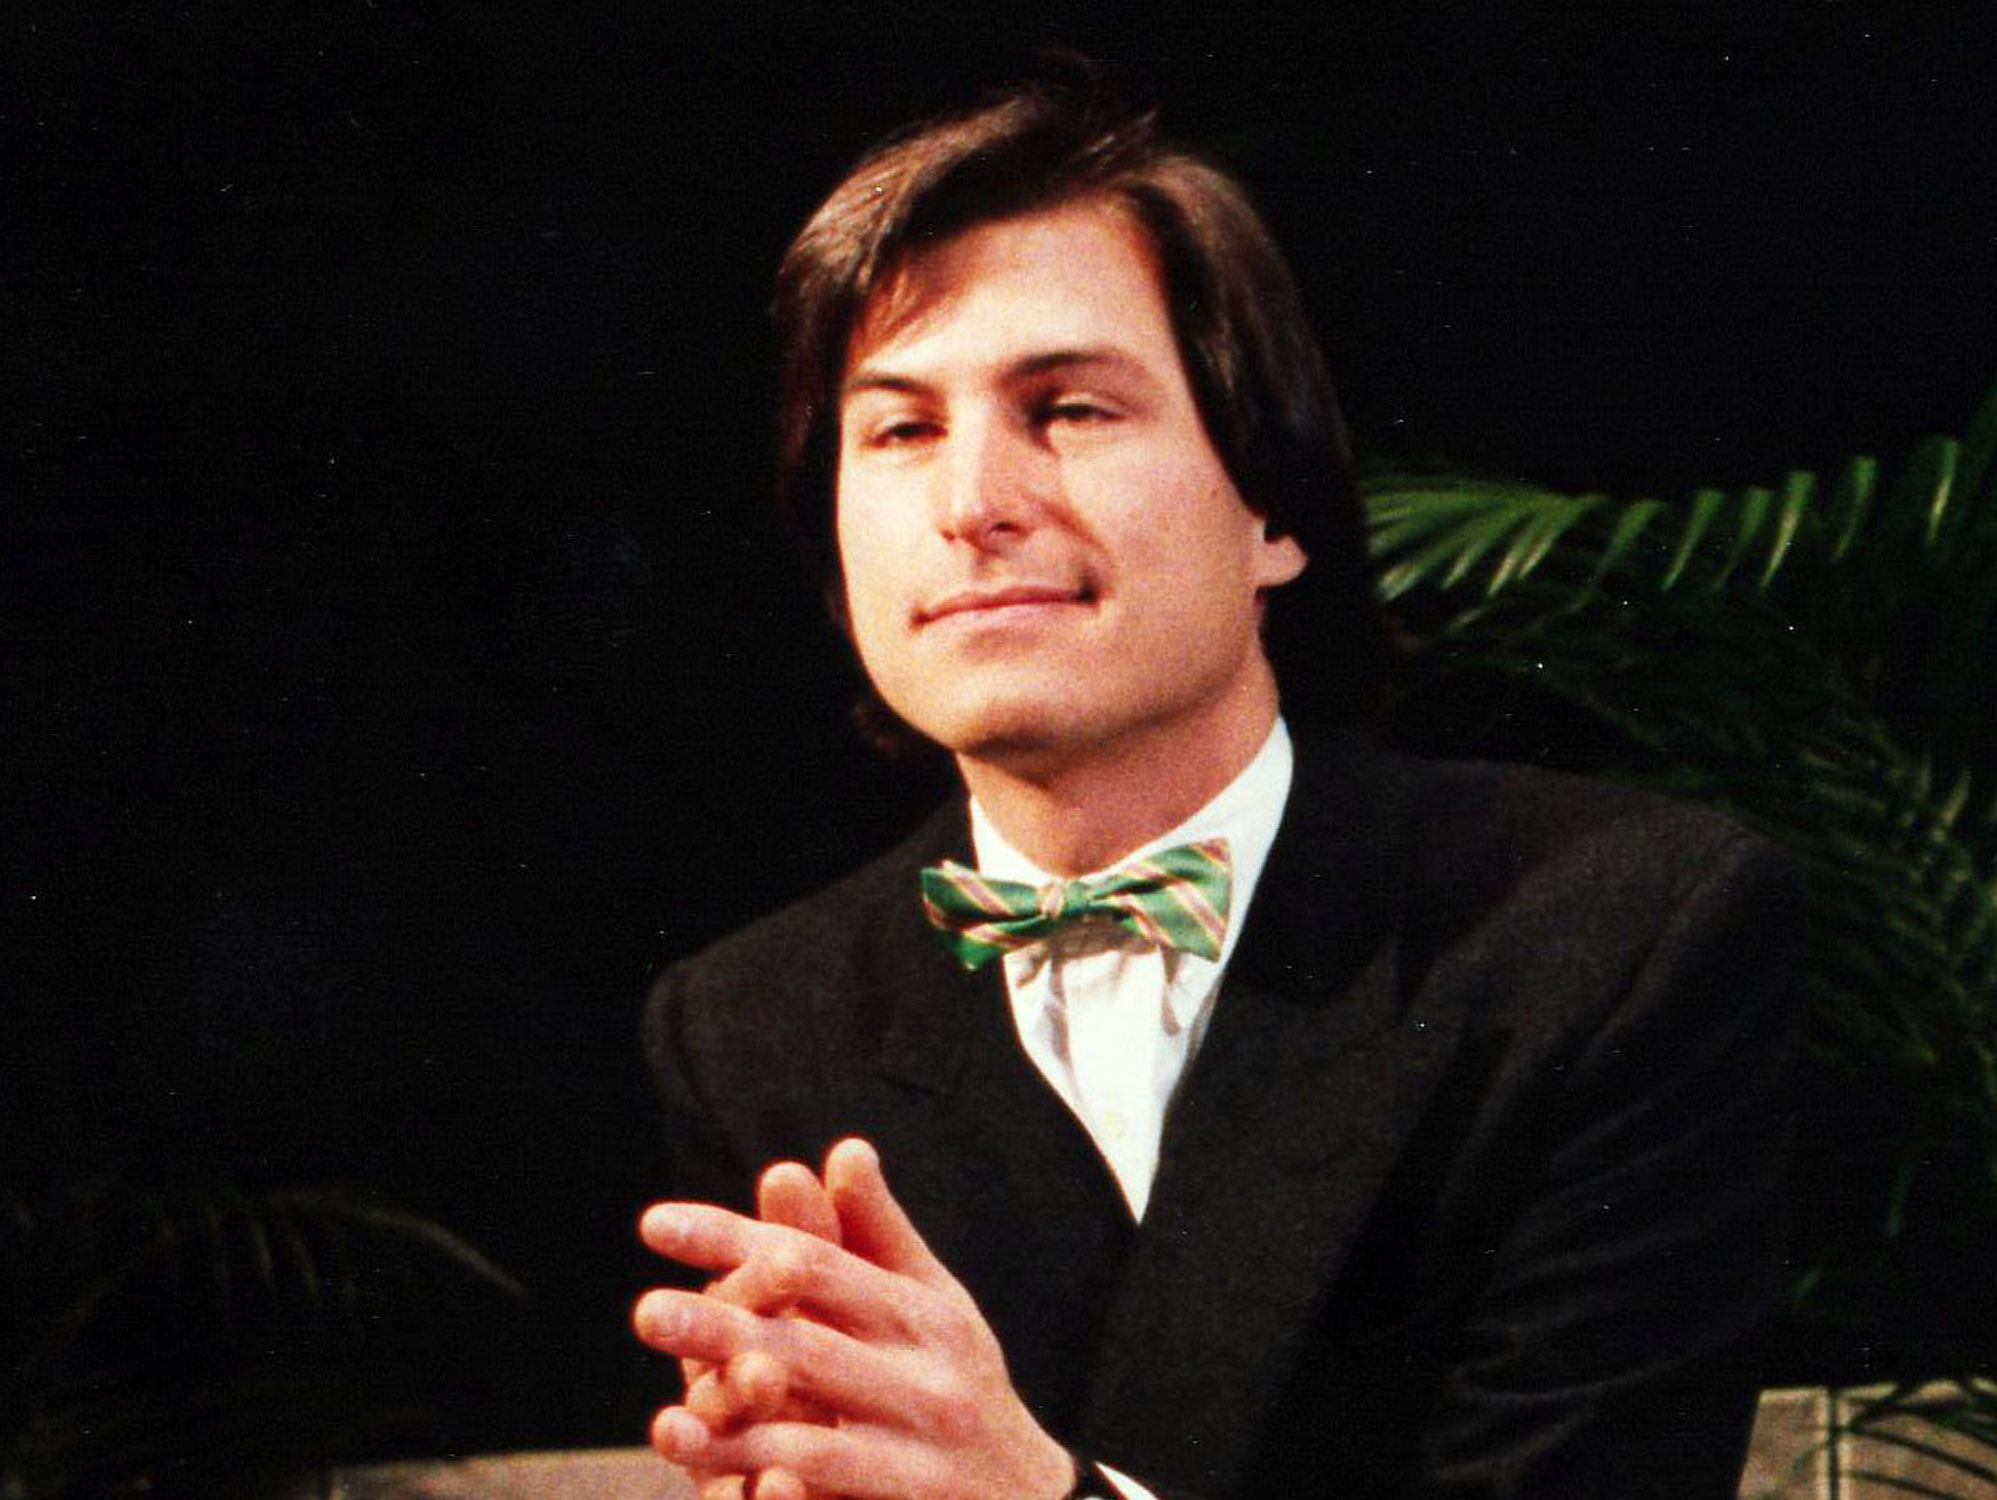 Apple's Steve Jobs To Be Featured On U.S. Postage Stamp